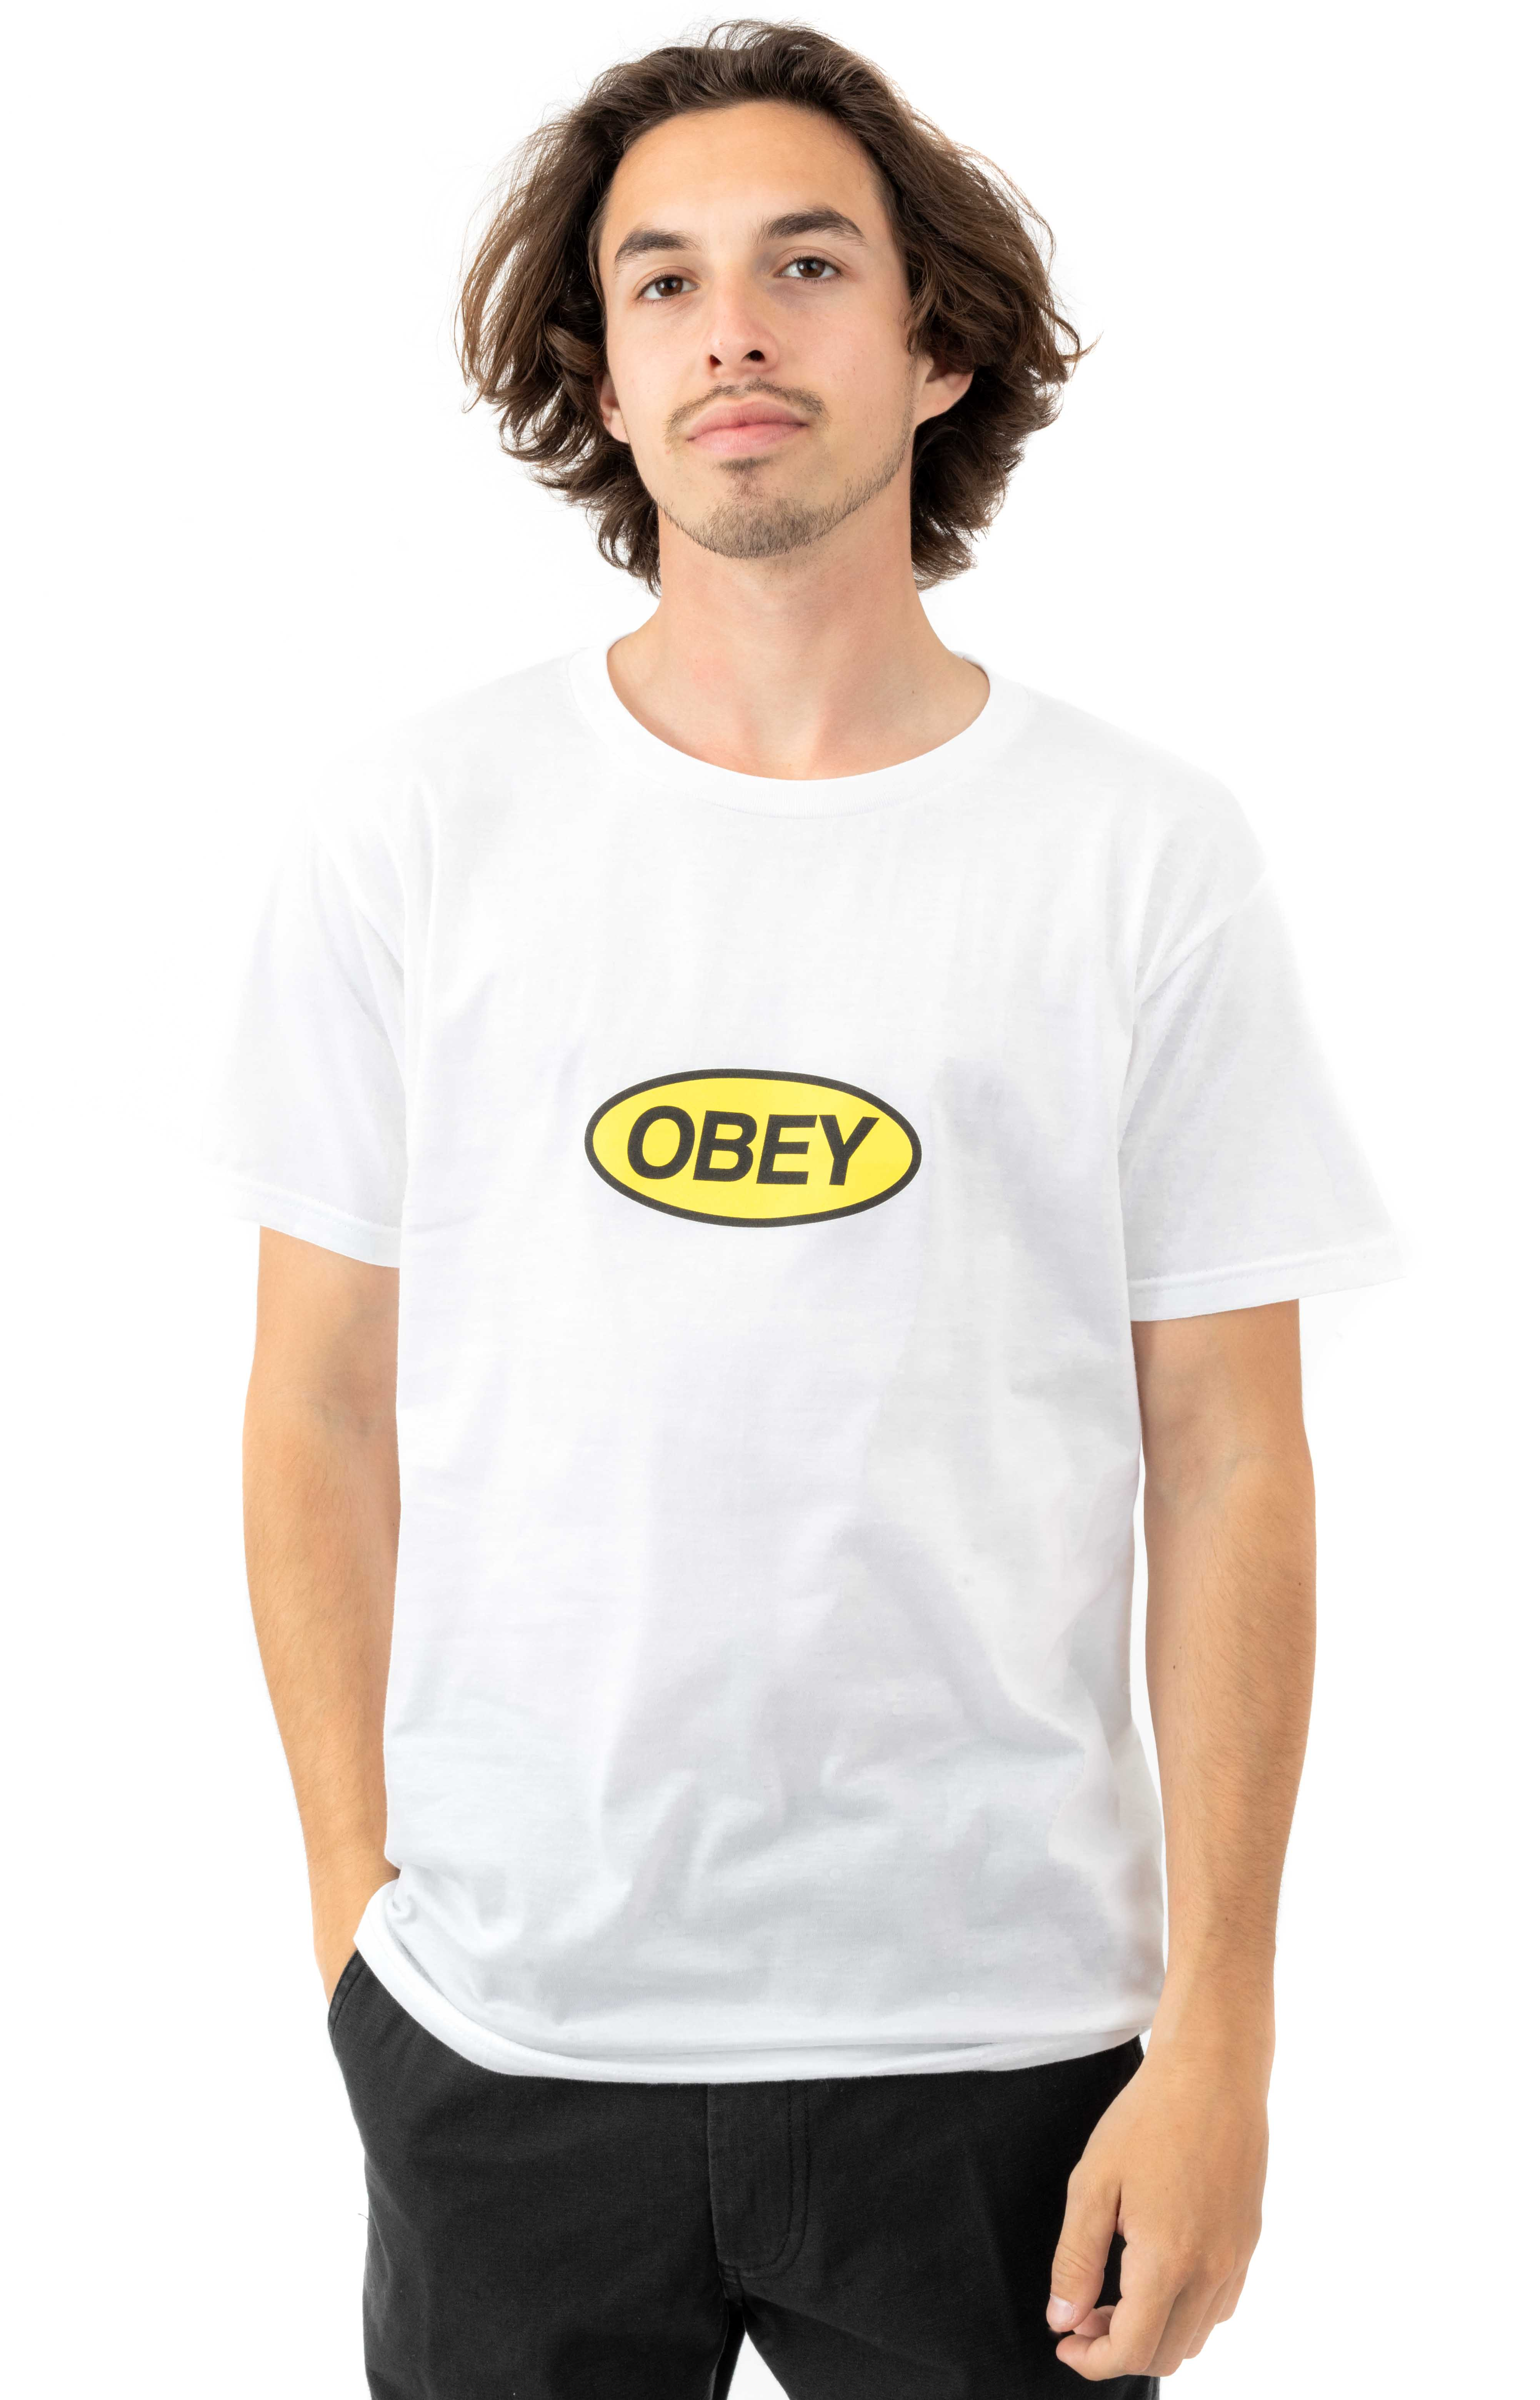 Obey Stacked T-Shirt - White  2